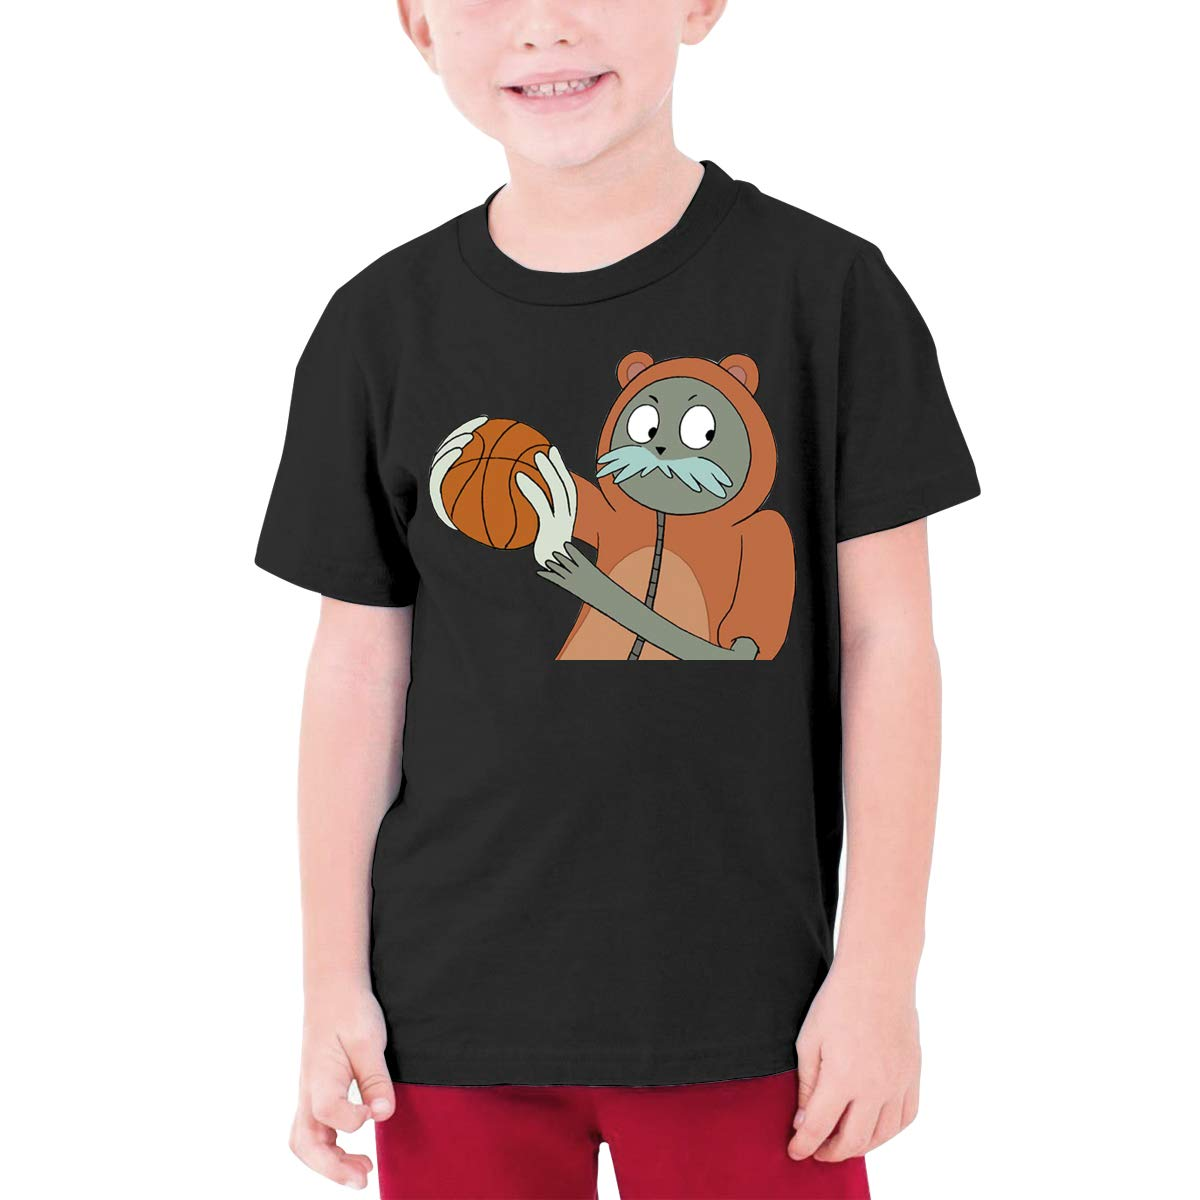 Runxin Customized Maxresdefault Funny T-Shirt O-Neck for Teenagers Black